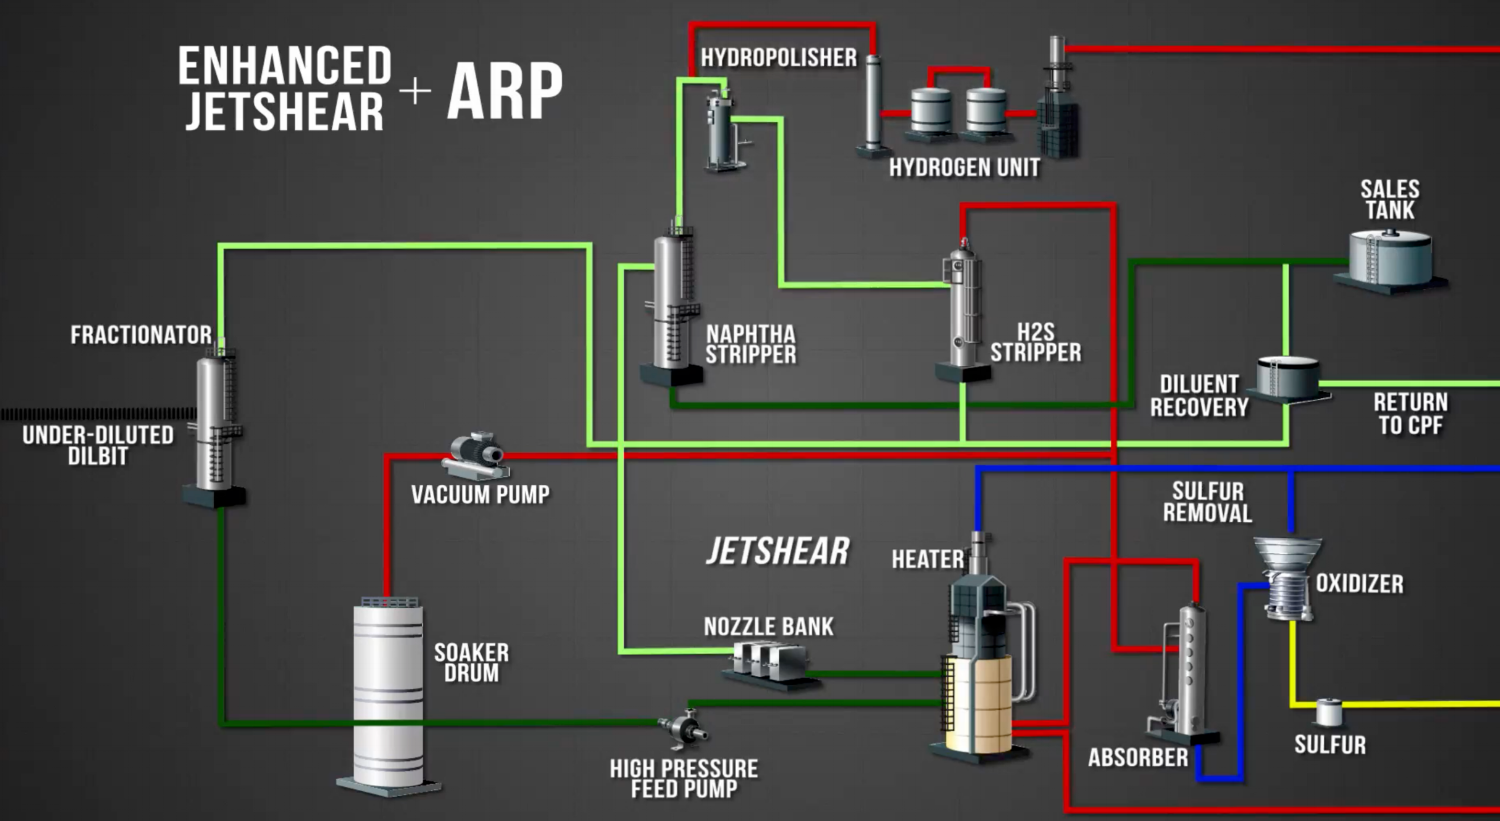 ENHANCED JETSHEAR + ARP PROCESS FLOWSHEET (COURTESY FRACTAL SYSTEMS)